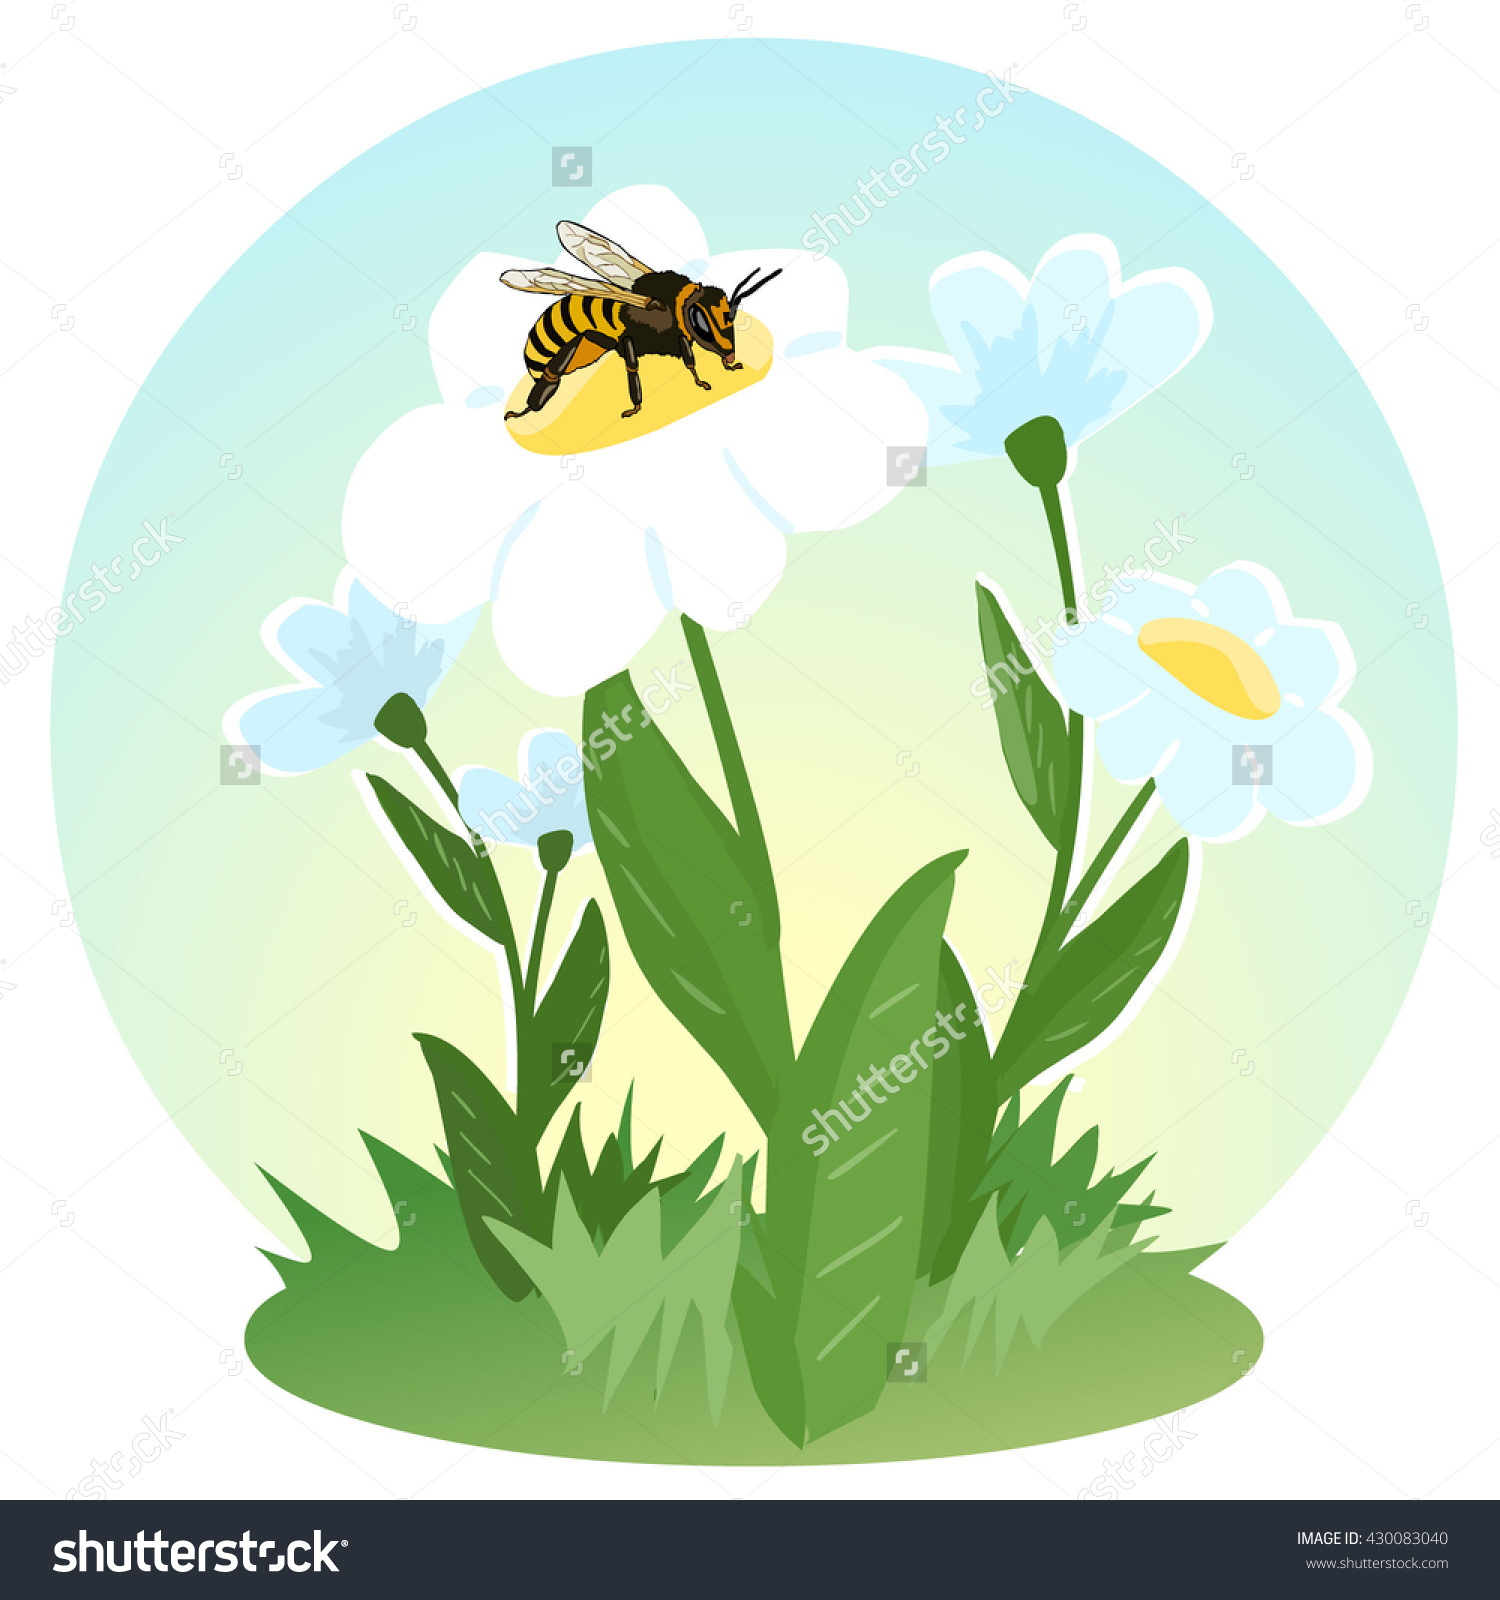 A Bee Collects Nectar On The Flowers. Life Of Flying Insects.